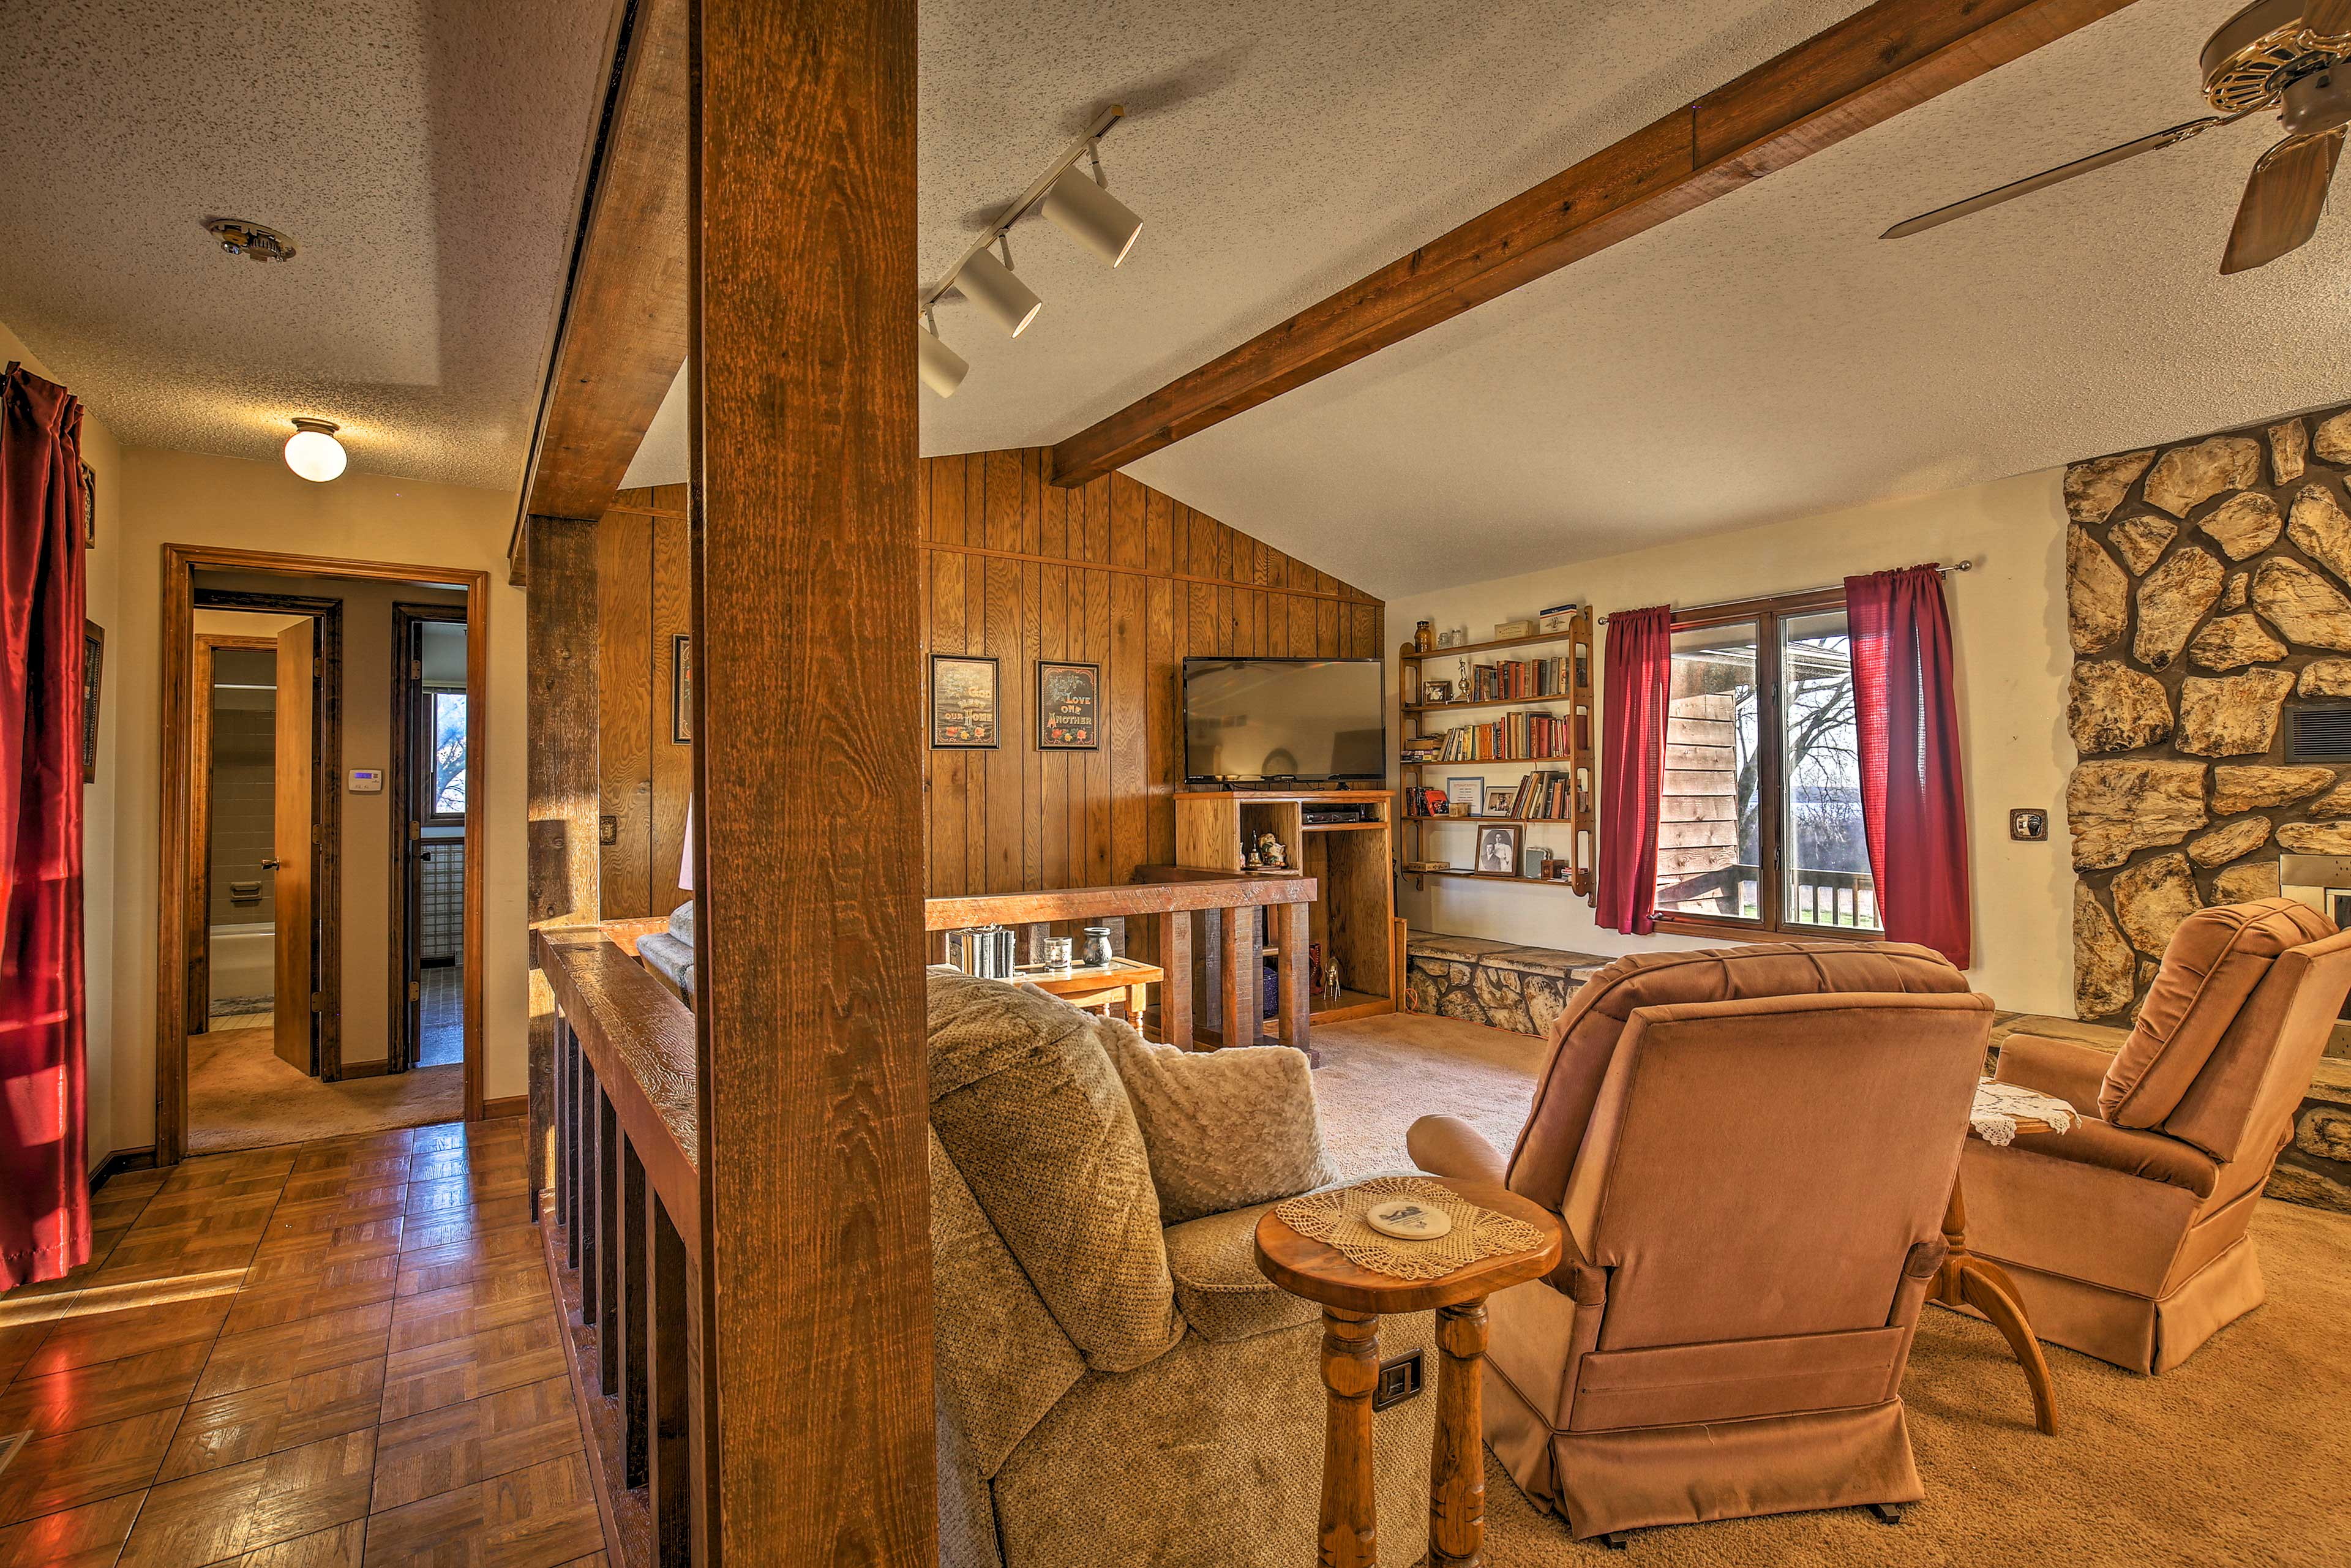 Comfortable seating makes it easy to unwind in this spacious retreat.